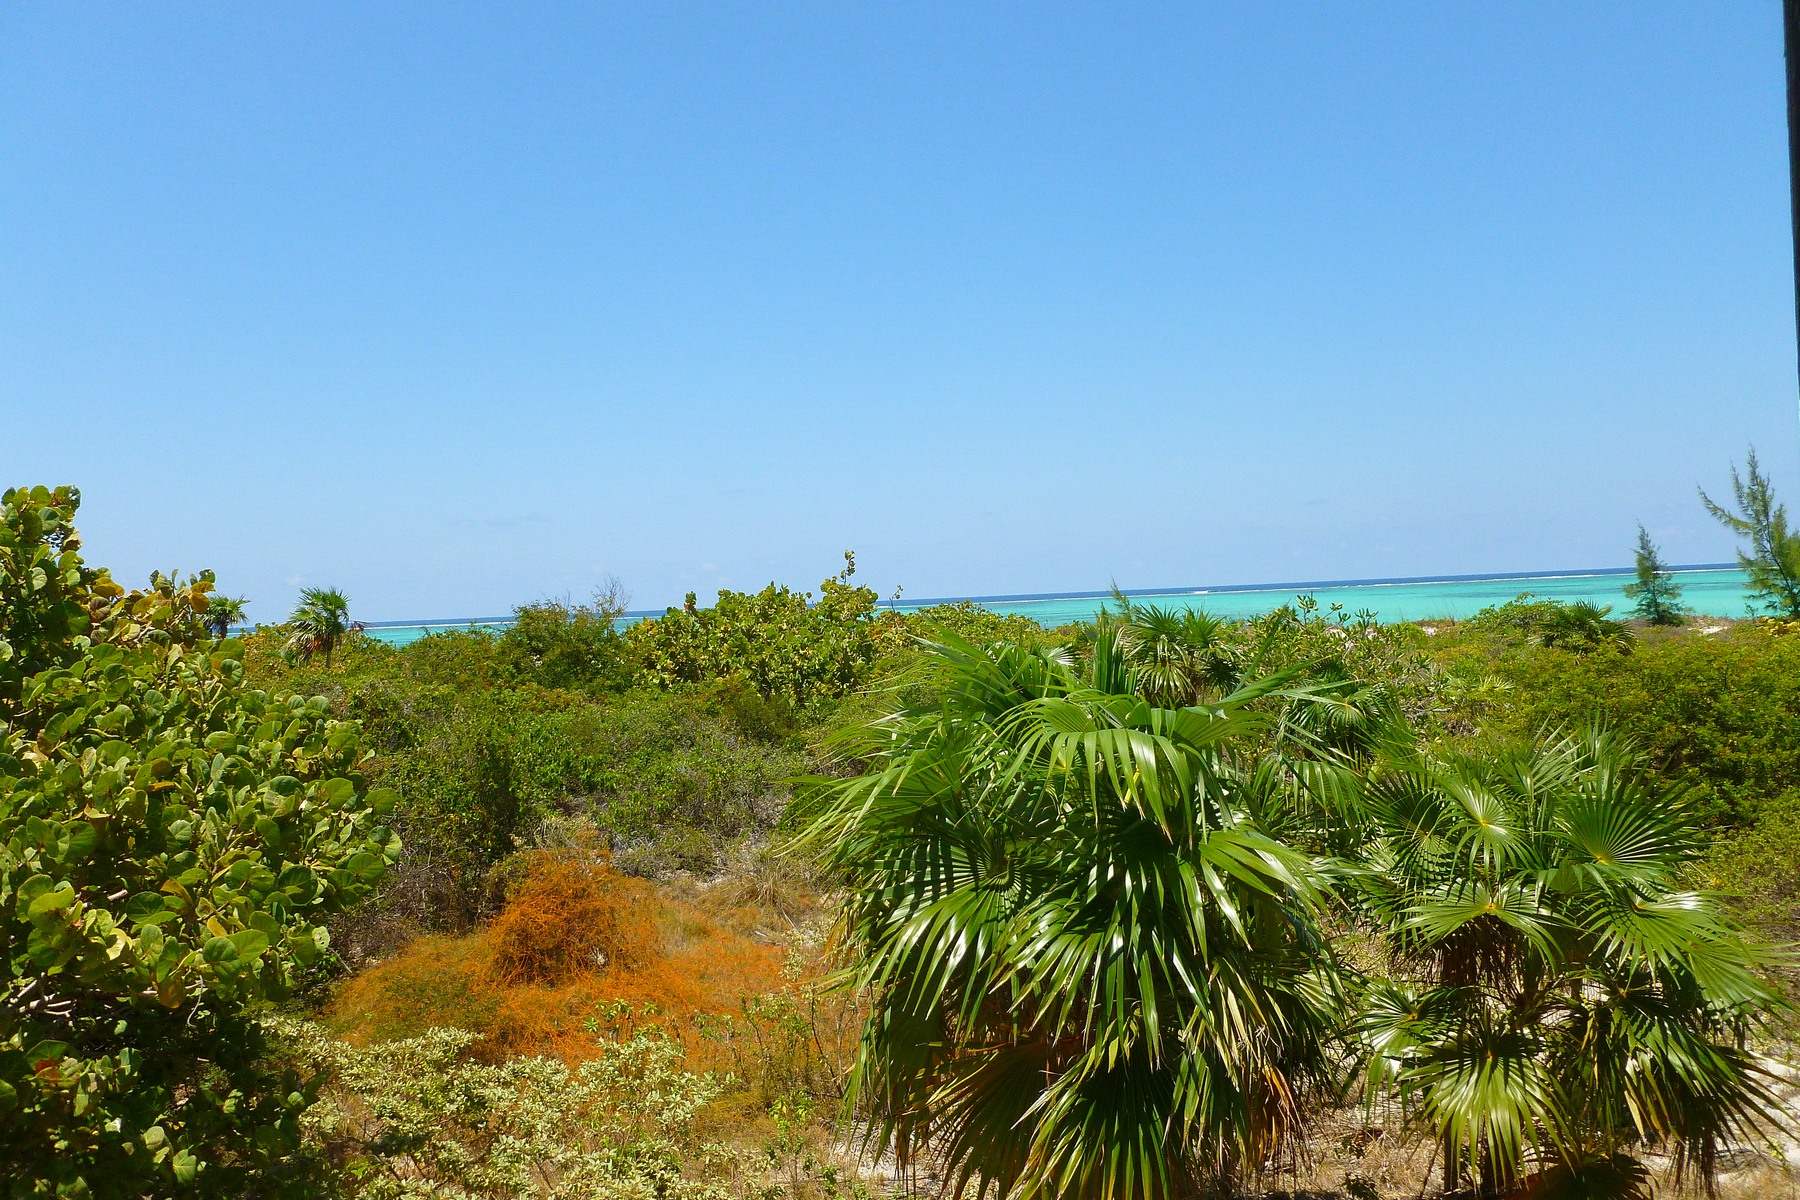 Single Family Home for Sale at Whitby Residential Home Oceanview Whitby, North Caicos TCI BWI Turks And Caicos Islands